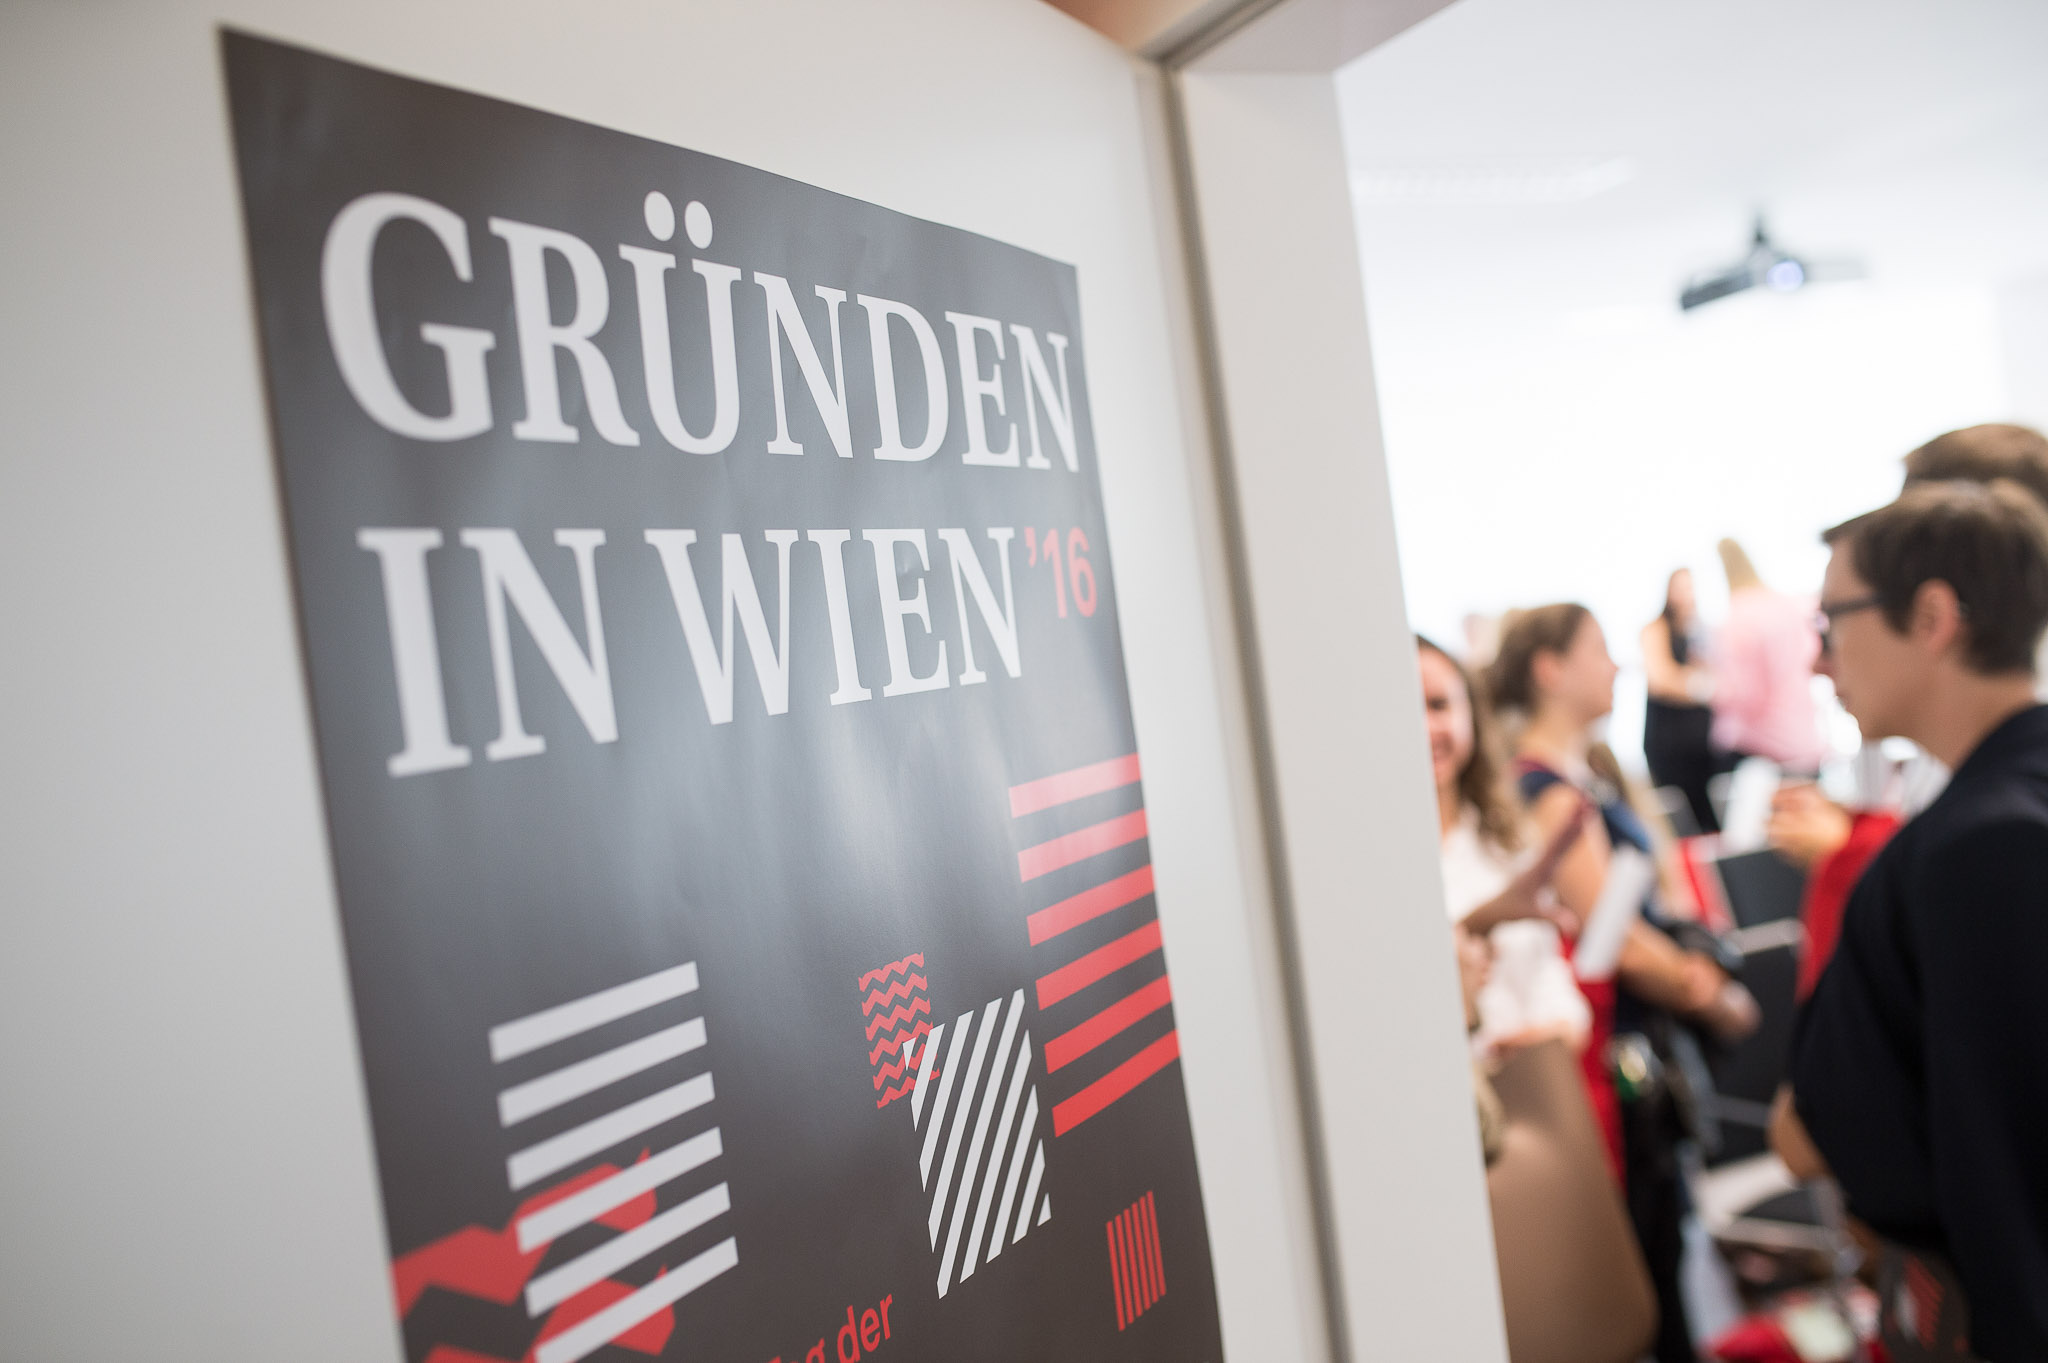 Gründen in Wien: the City Turned Into a Stage for Start-ups